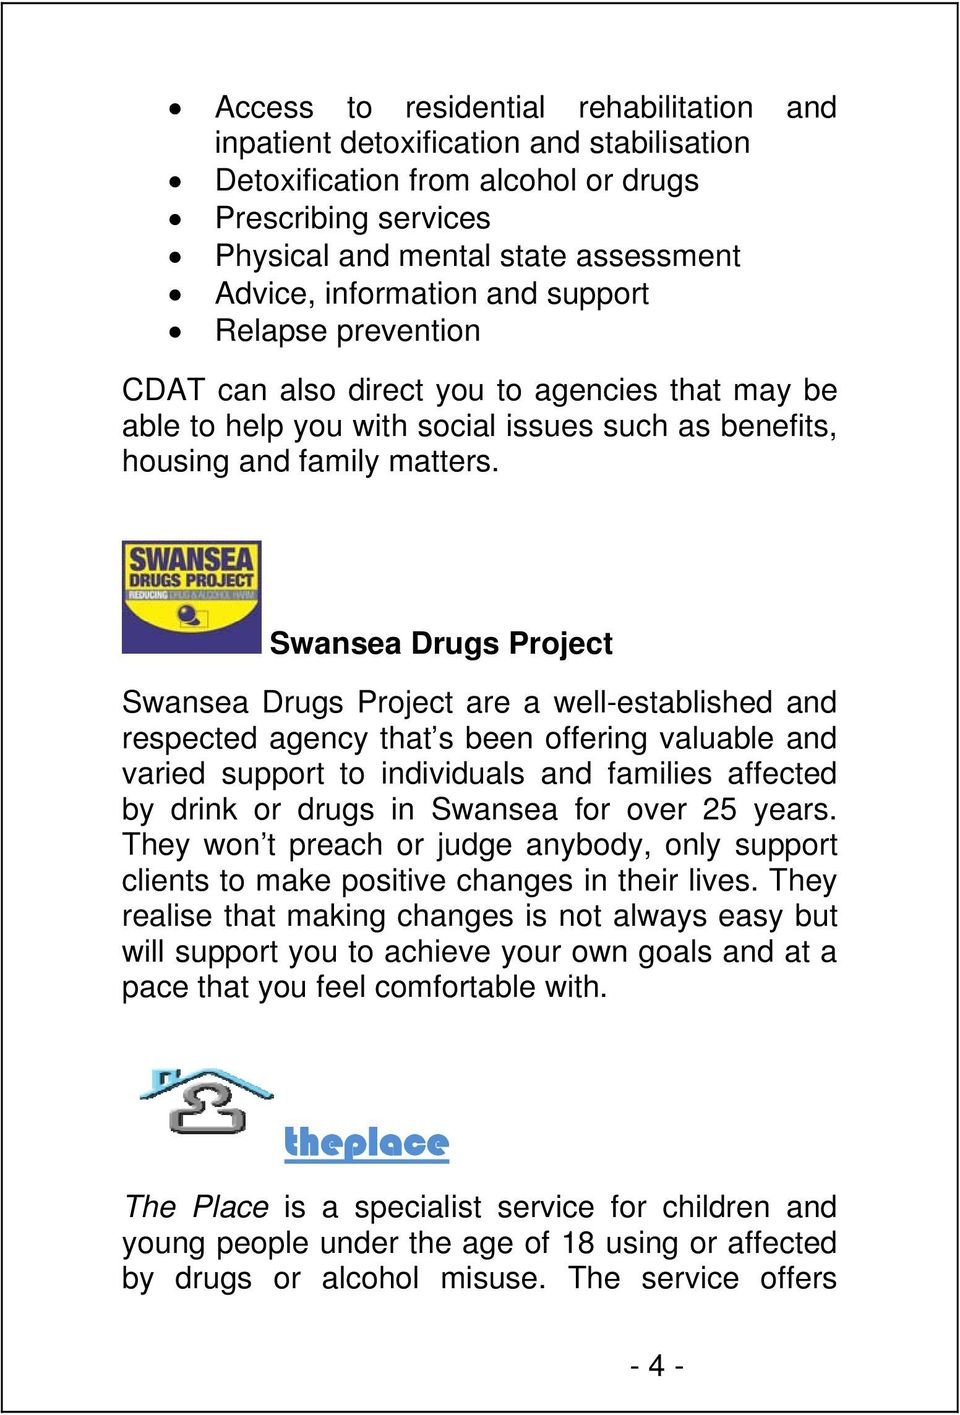 Swansea Drugs Project Swansea Drugs Project are a well-established and respected agency that s been offering valuable and varied support to individuals and families affected by drink or drugs in